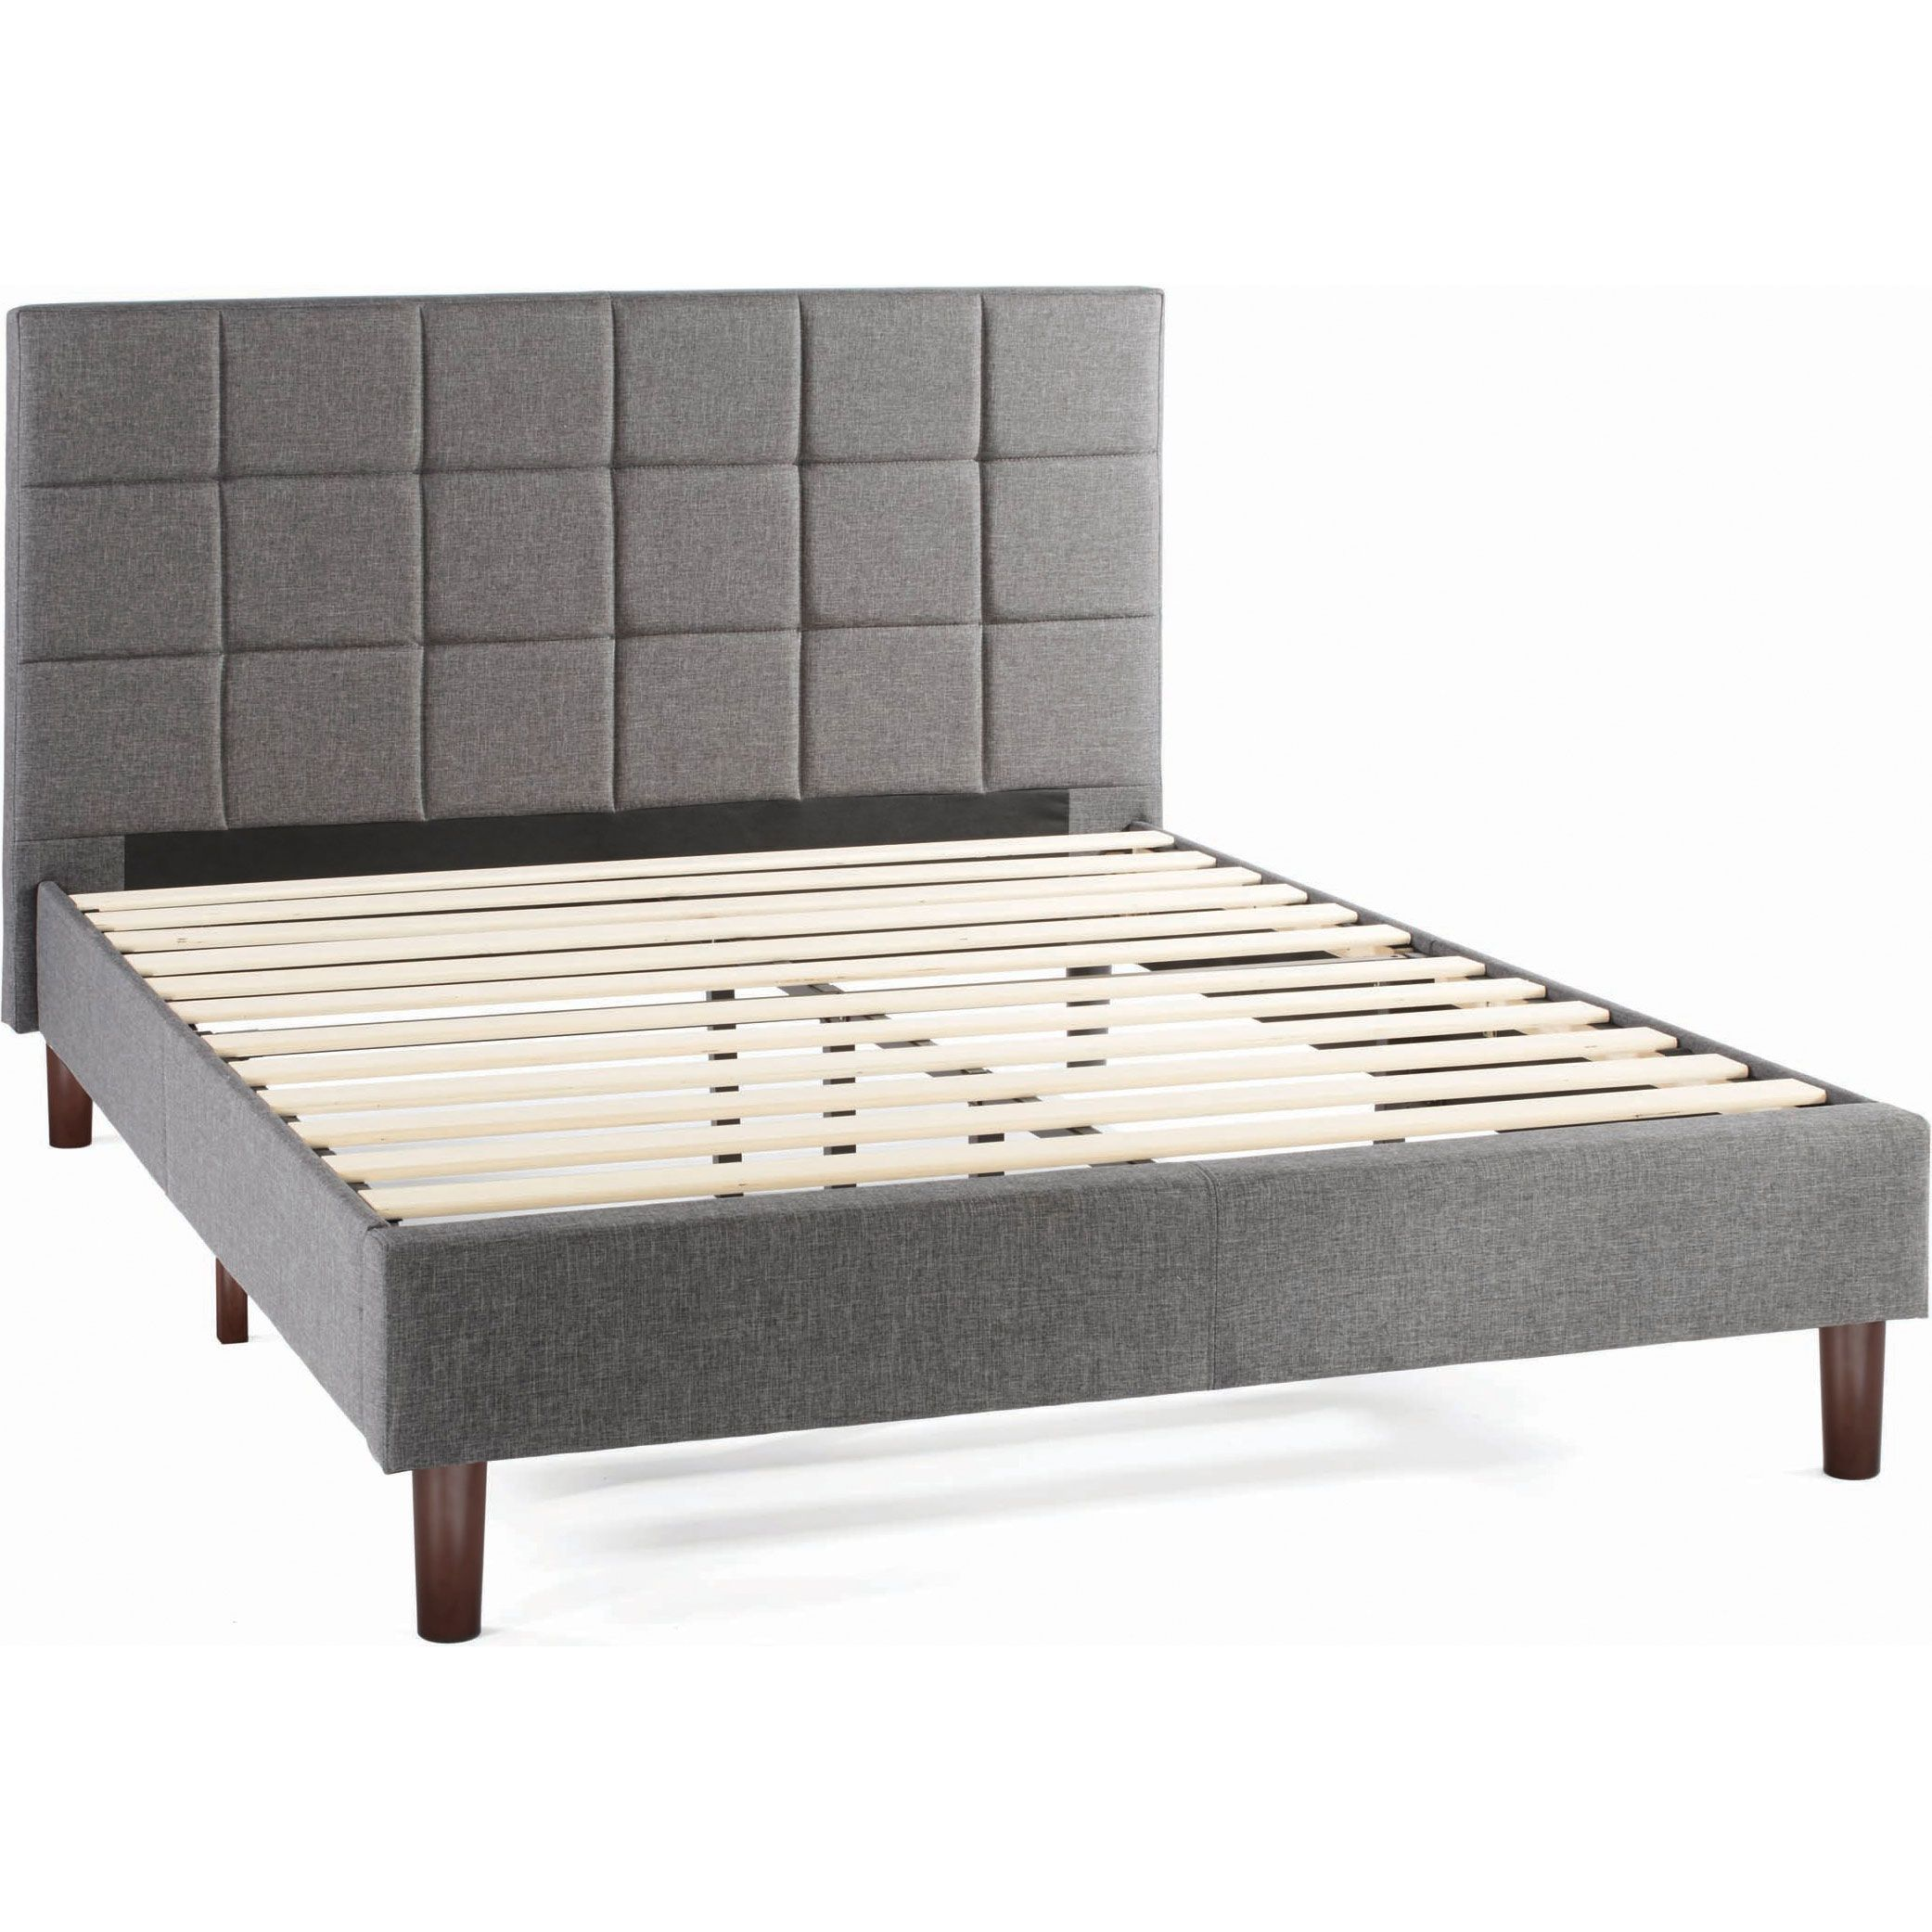 6f3a97e86207 Better Homes & Gardens Knox Upholstered Platform Bed, Multiple Sizes ...